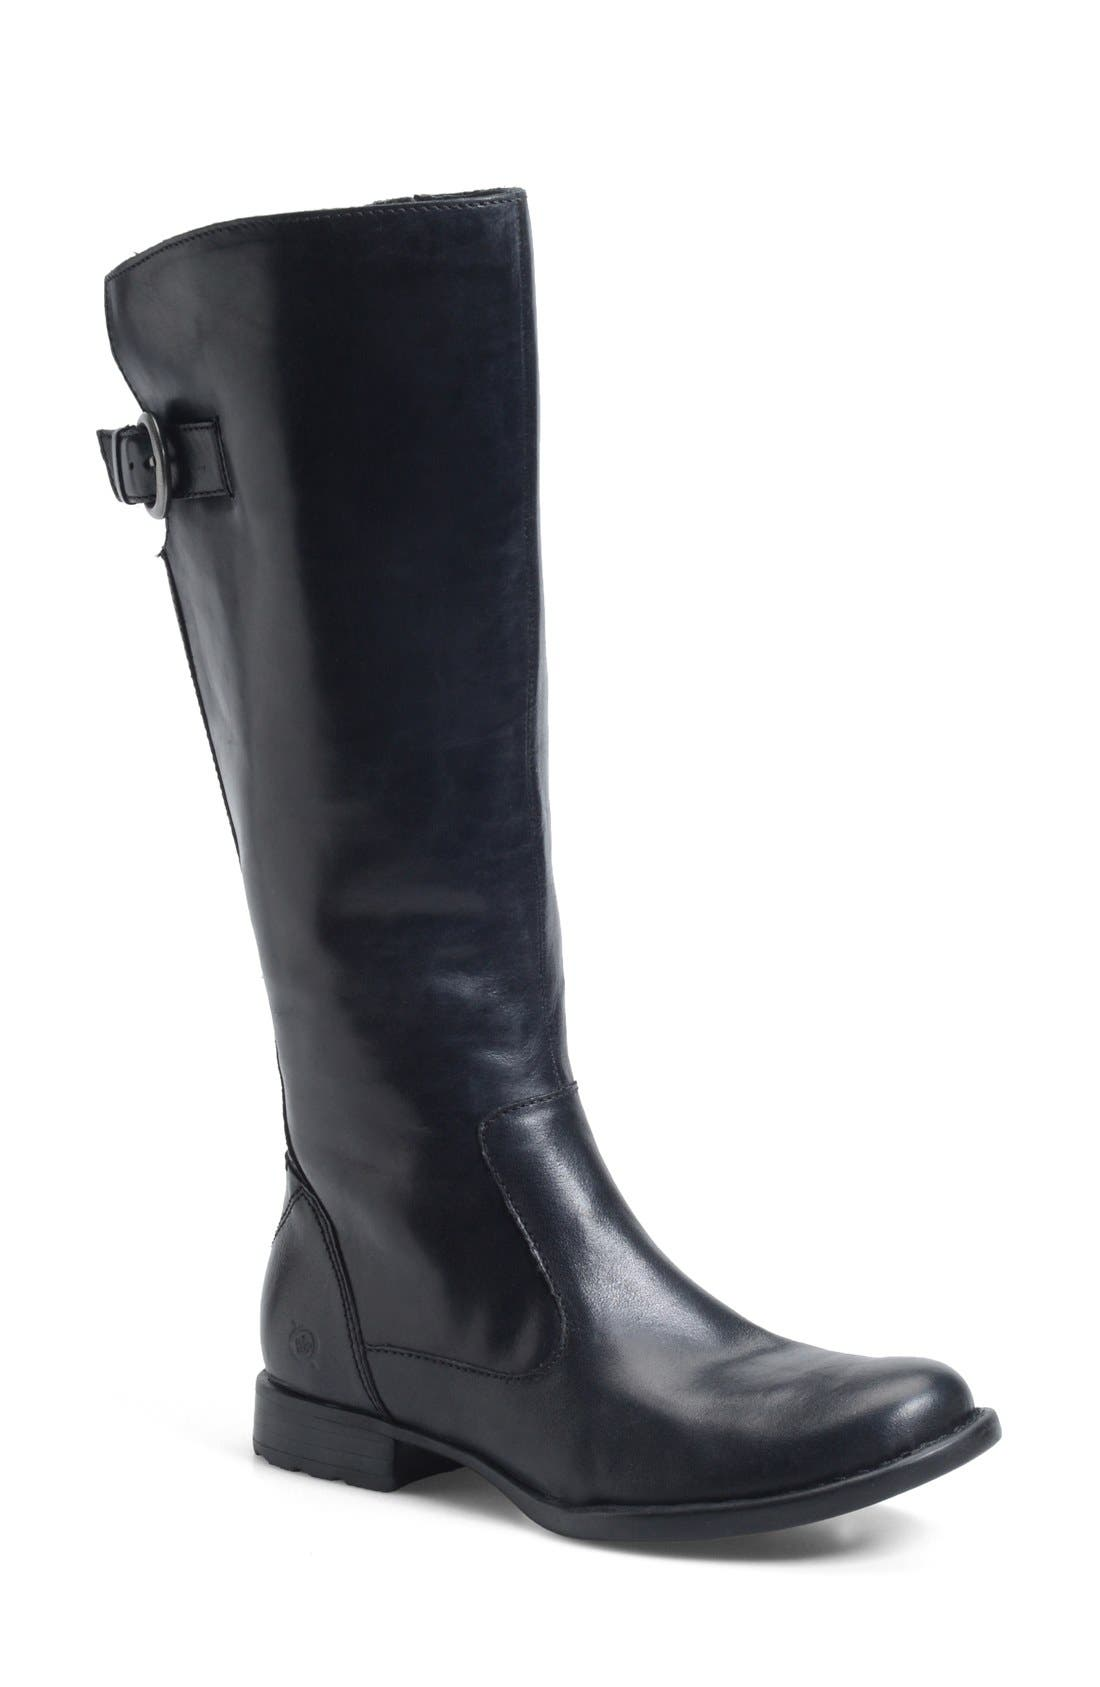 Alternate Image 1 Selected - Børn 'Lottie' Round Toe Boot (Women)